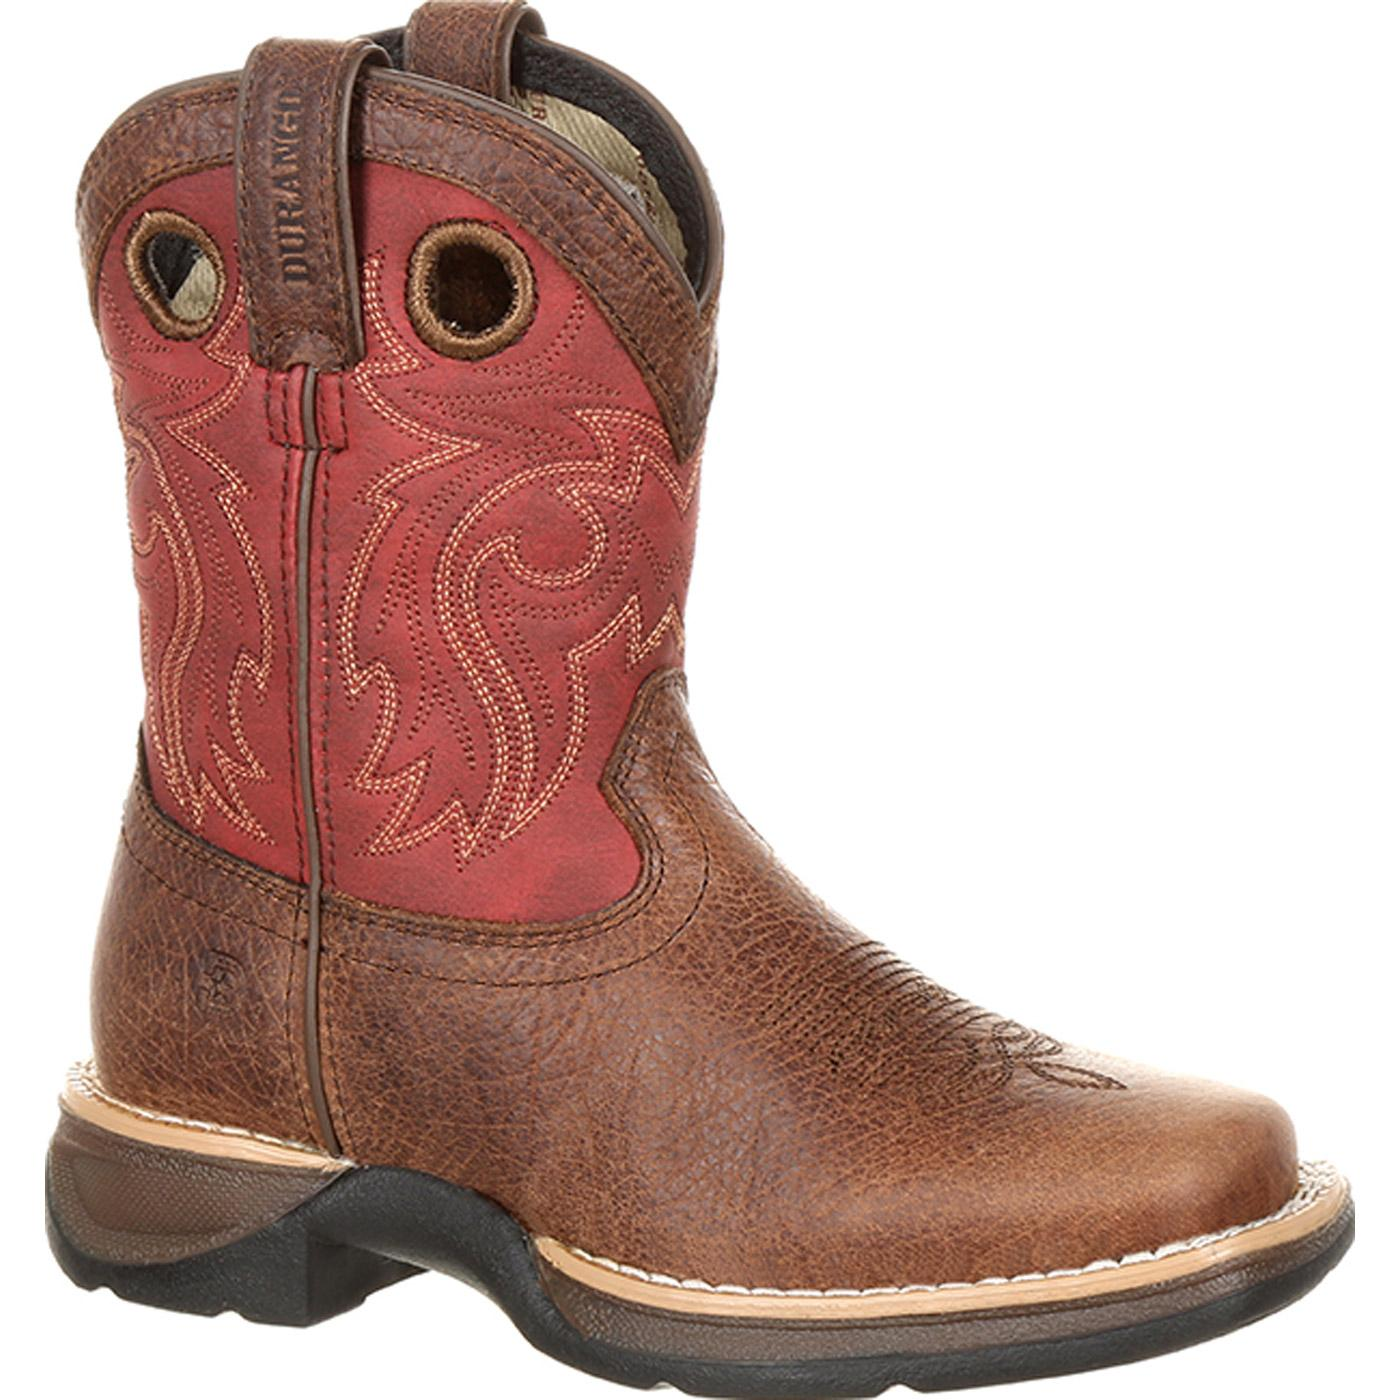 220cefaa934 Lil' Rebel by Durango Big Kids' Waterproof Western Saddle Boot